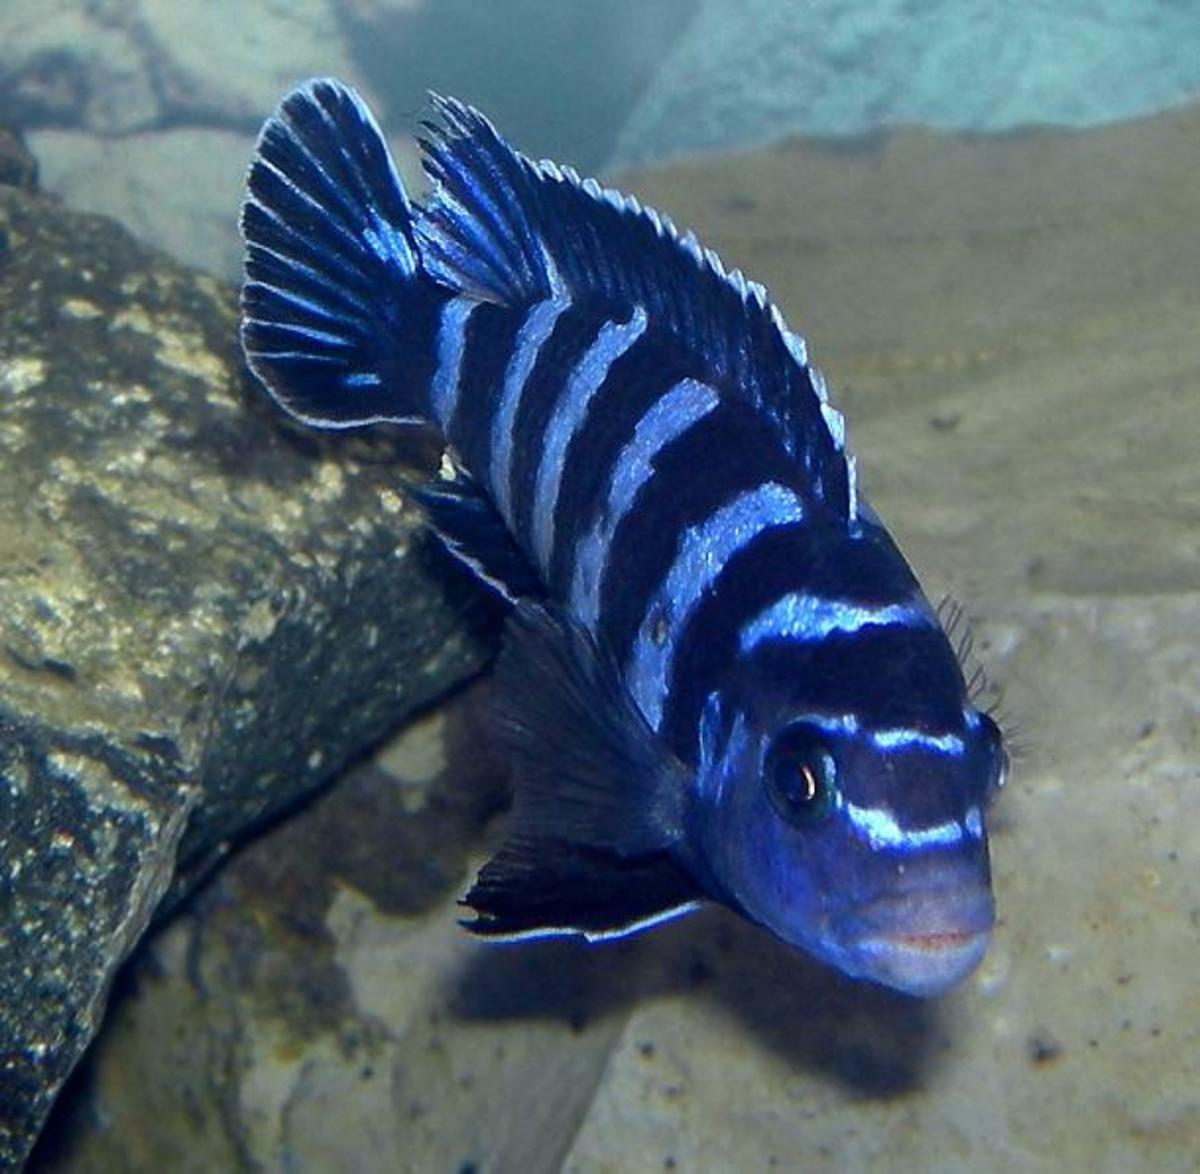 In the alkaline water needed by Malawi cichlids nitrite is as toxic as ammonia